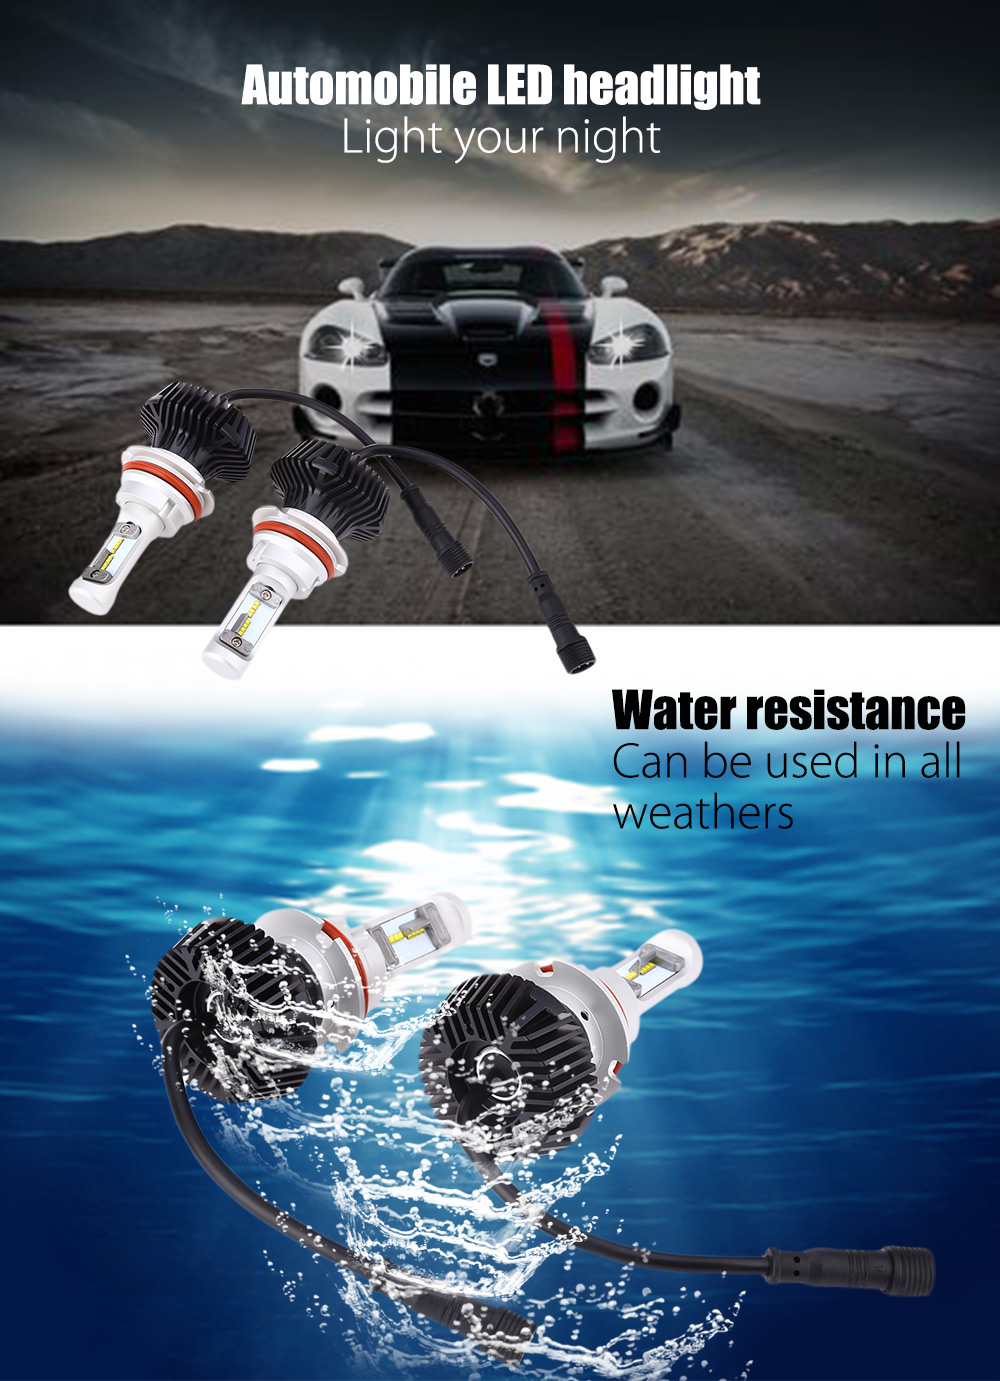 Pair of 9004 / 9007 Automobile Integrated LED Headlight 6500K Water Resistance Heat Dissipation 60W Bright Vehicle Lamp